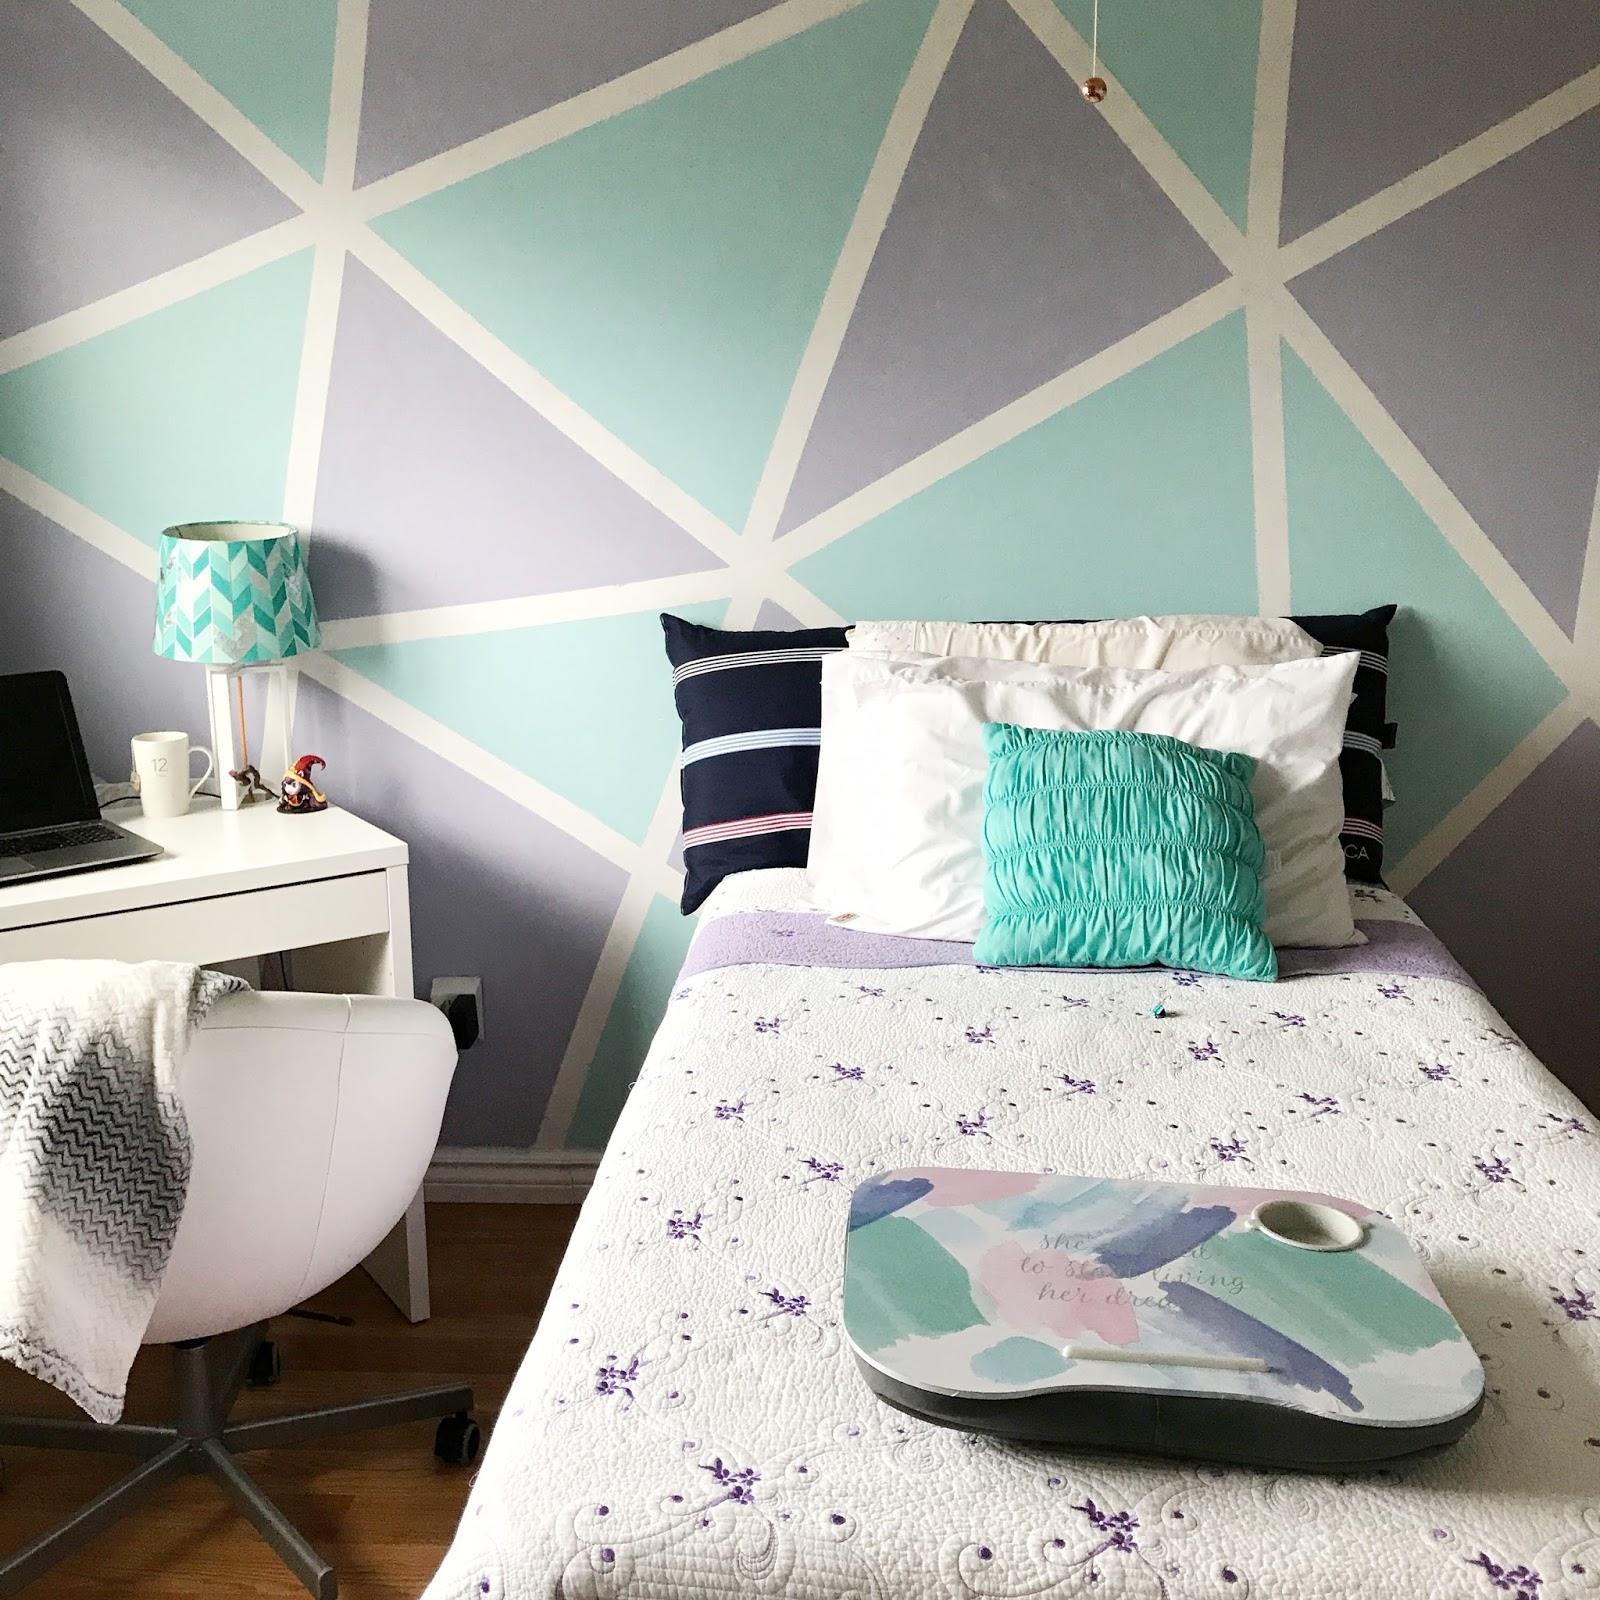 I Thought It Would Be Fun To Add A Pop Of Colour To My Bedroom By Adding An  Accent Wall Since All Of My Other Walls Are White.